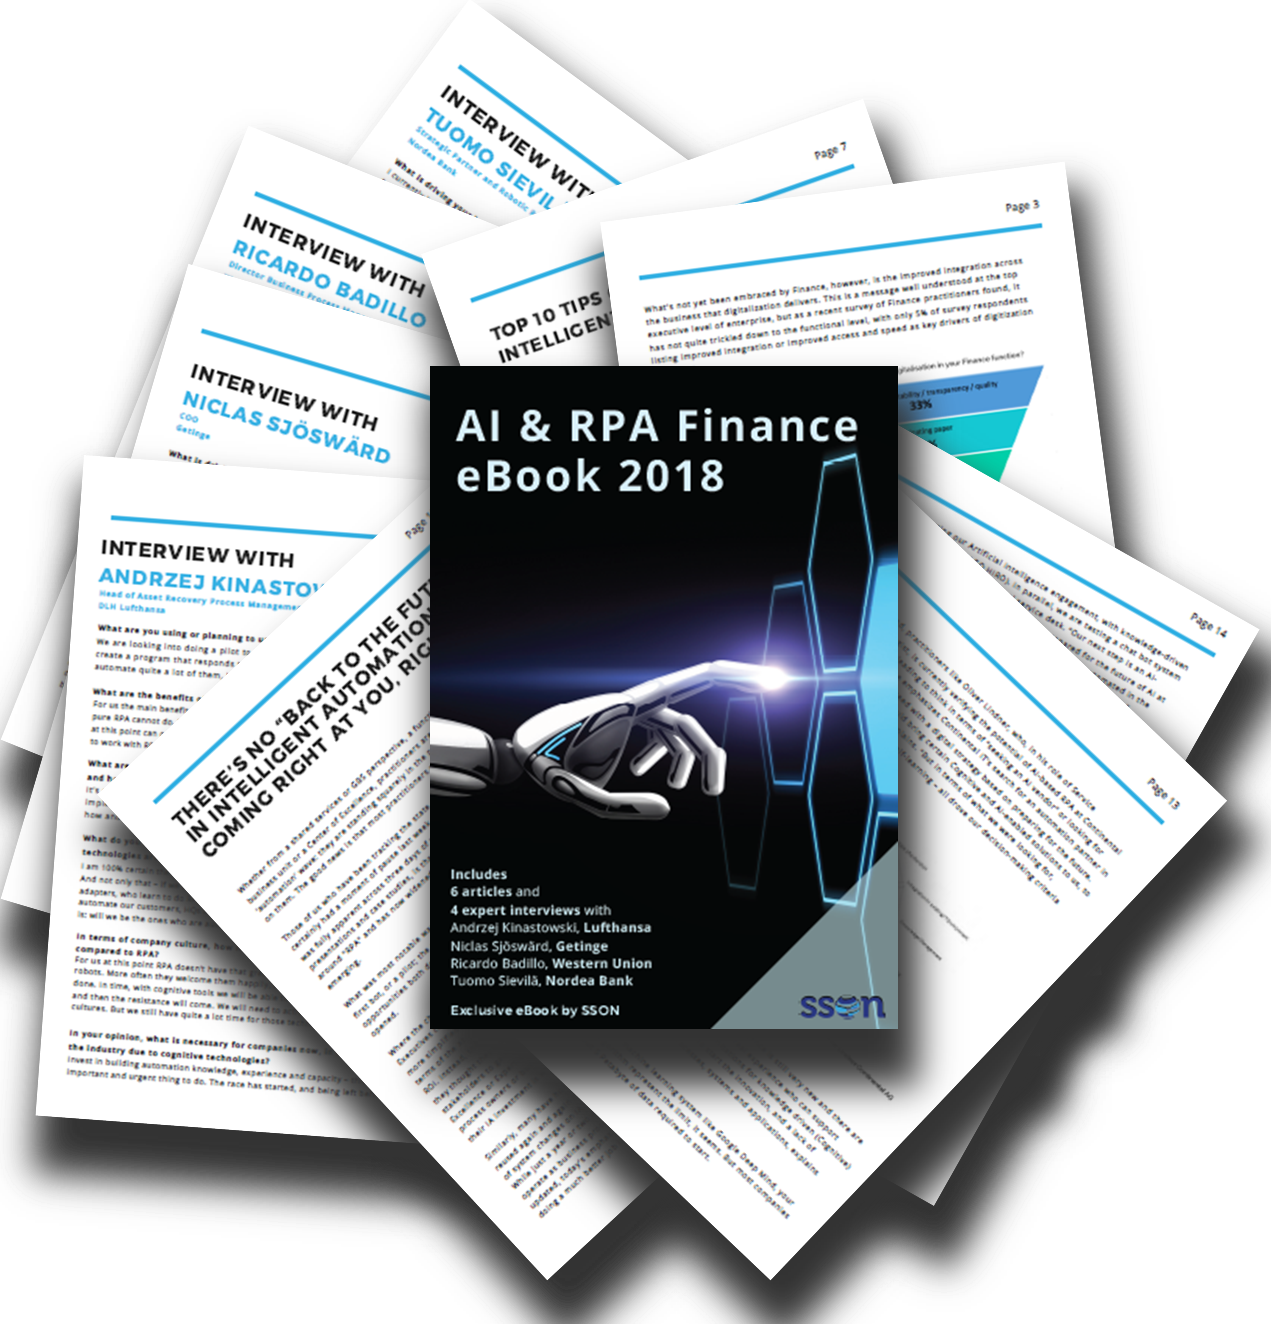 AI and RPA Finance eBook 2018